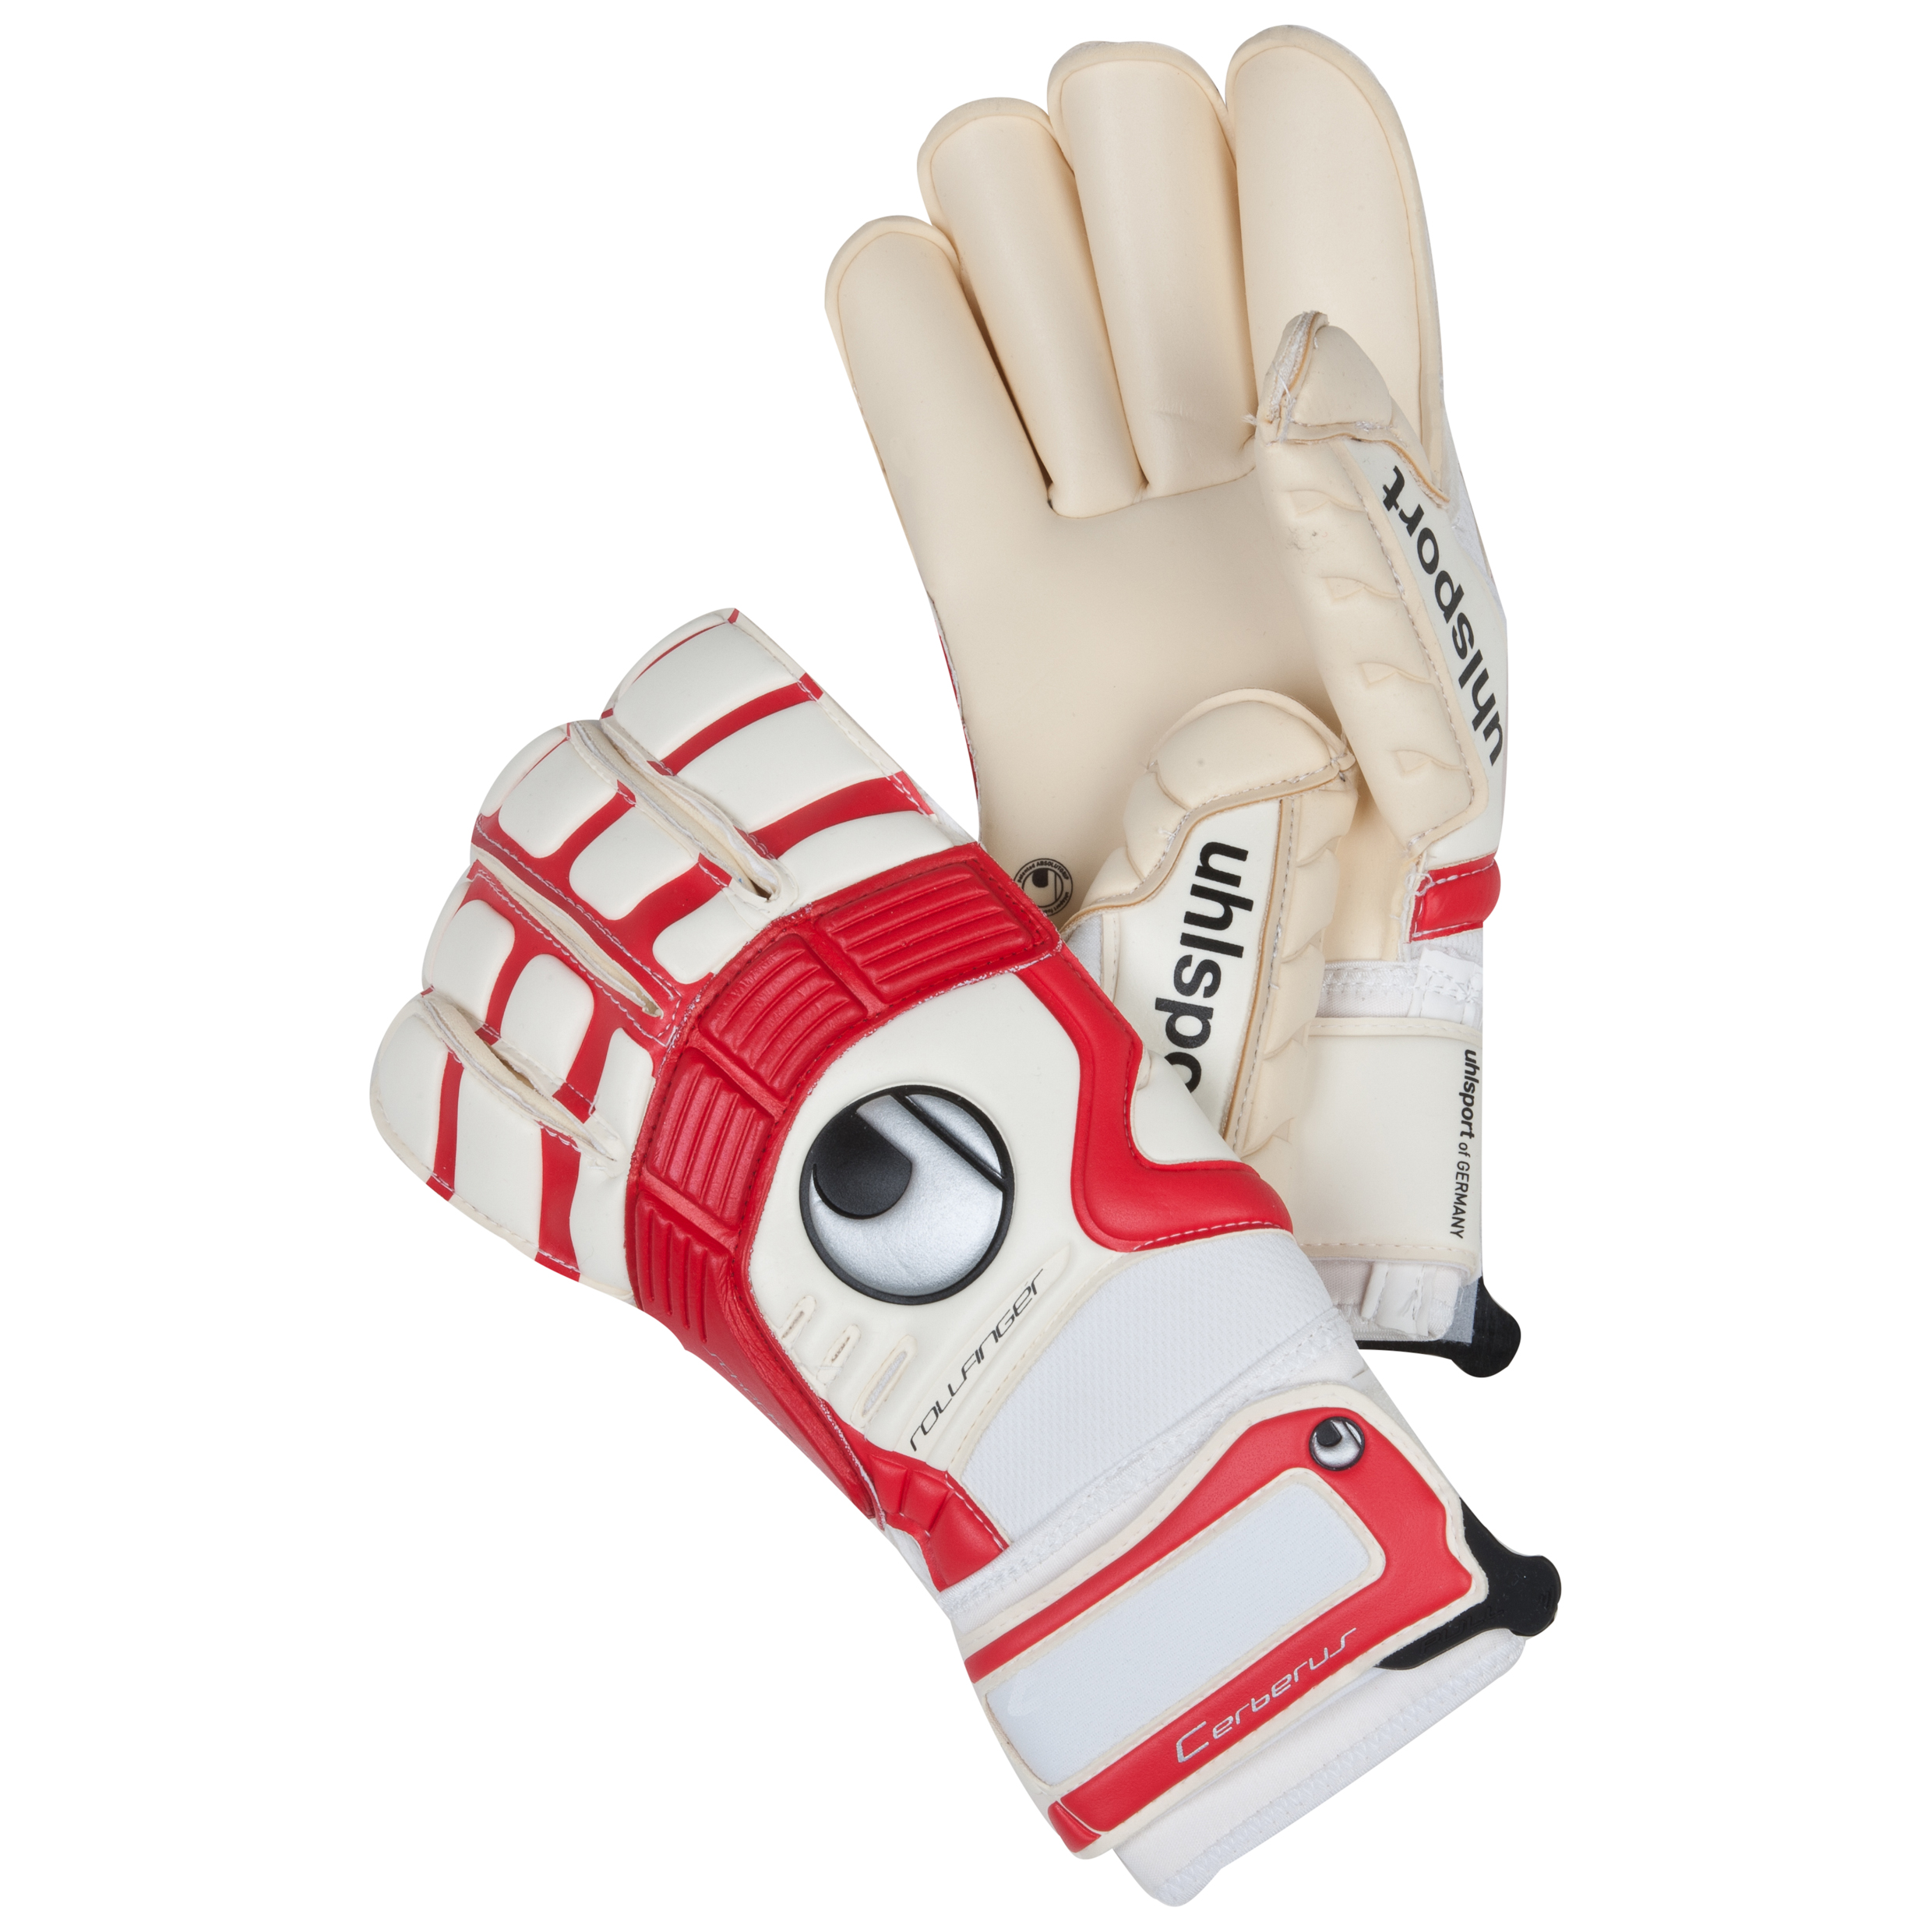 Uhlsport Cerberus Absolutgrip Rollfinger Goalkeeper Gloves - White/Red/Black